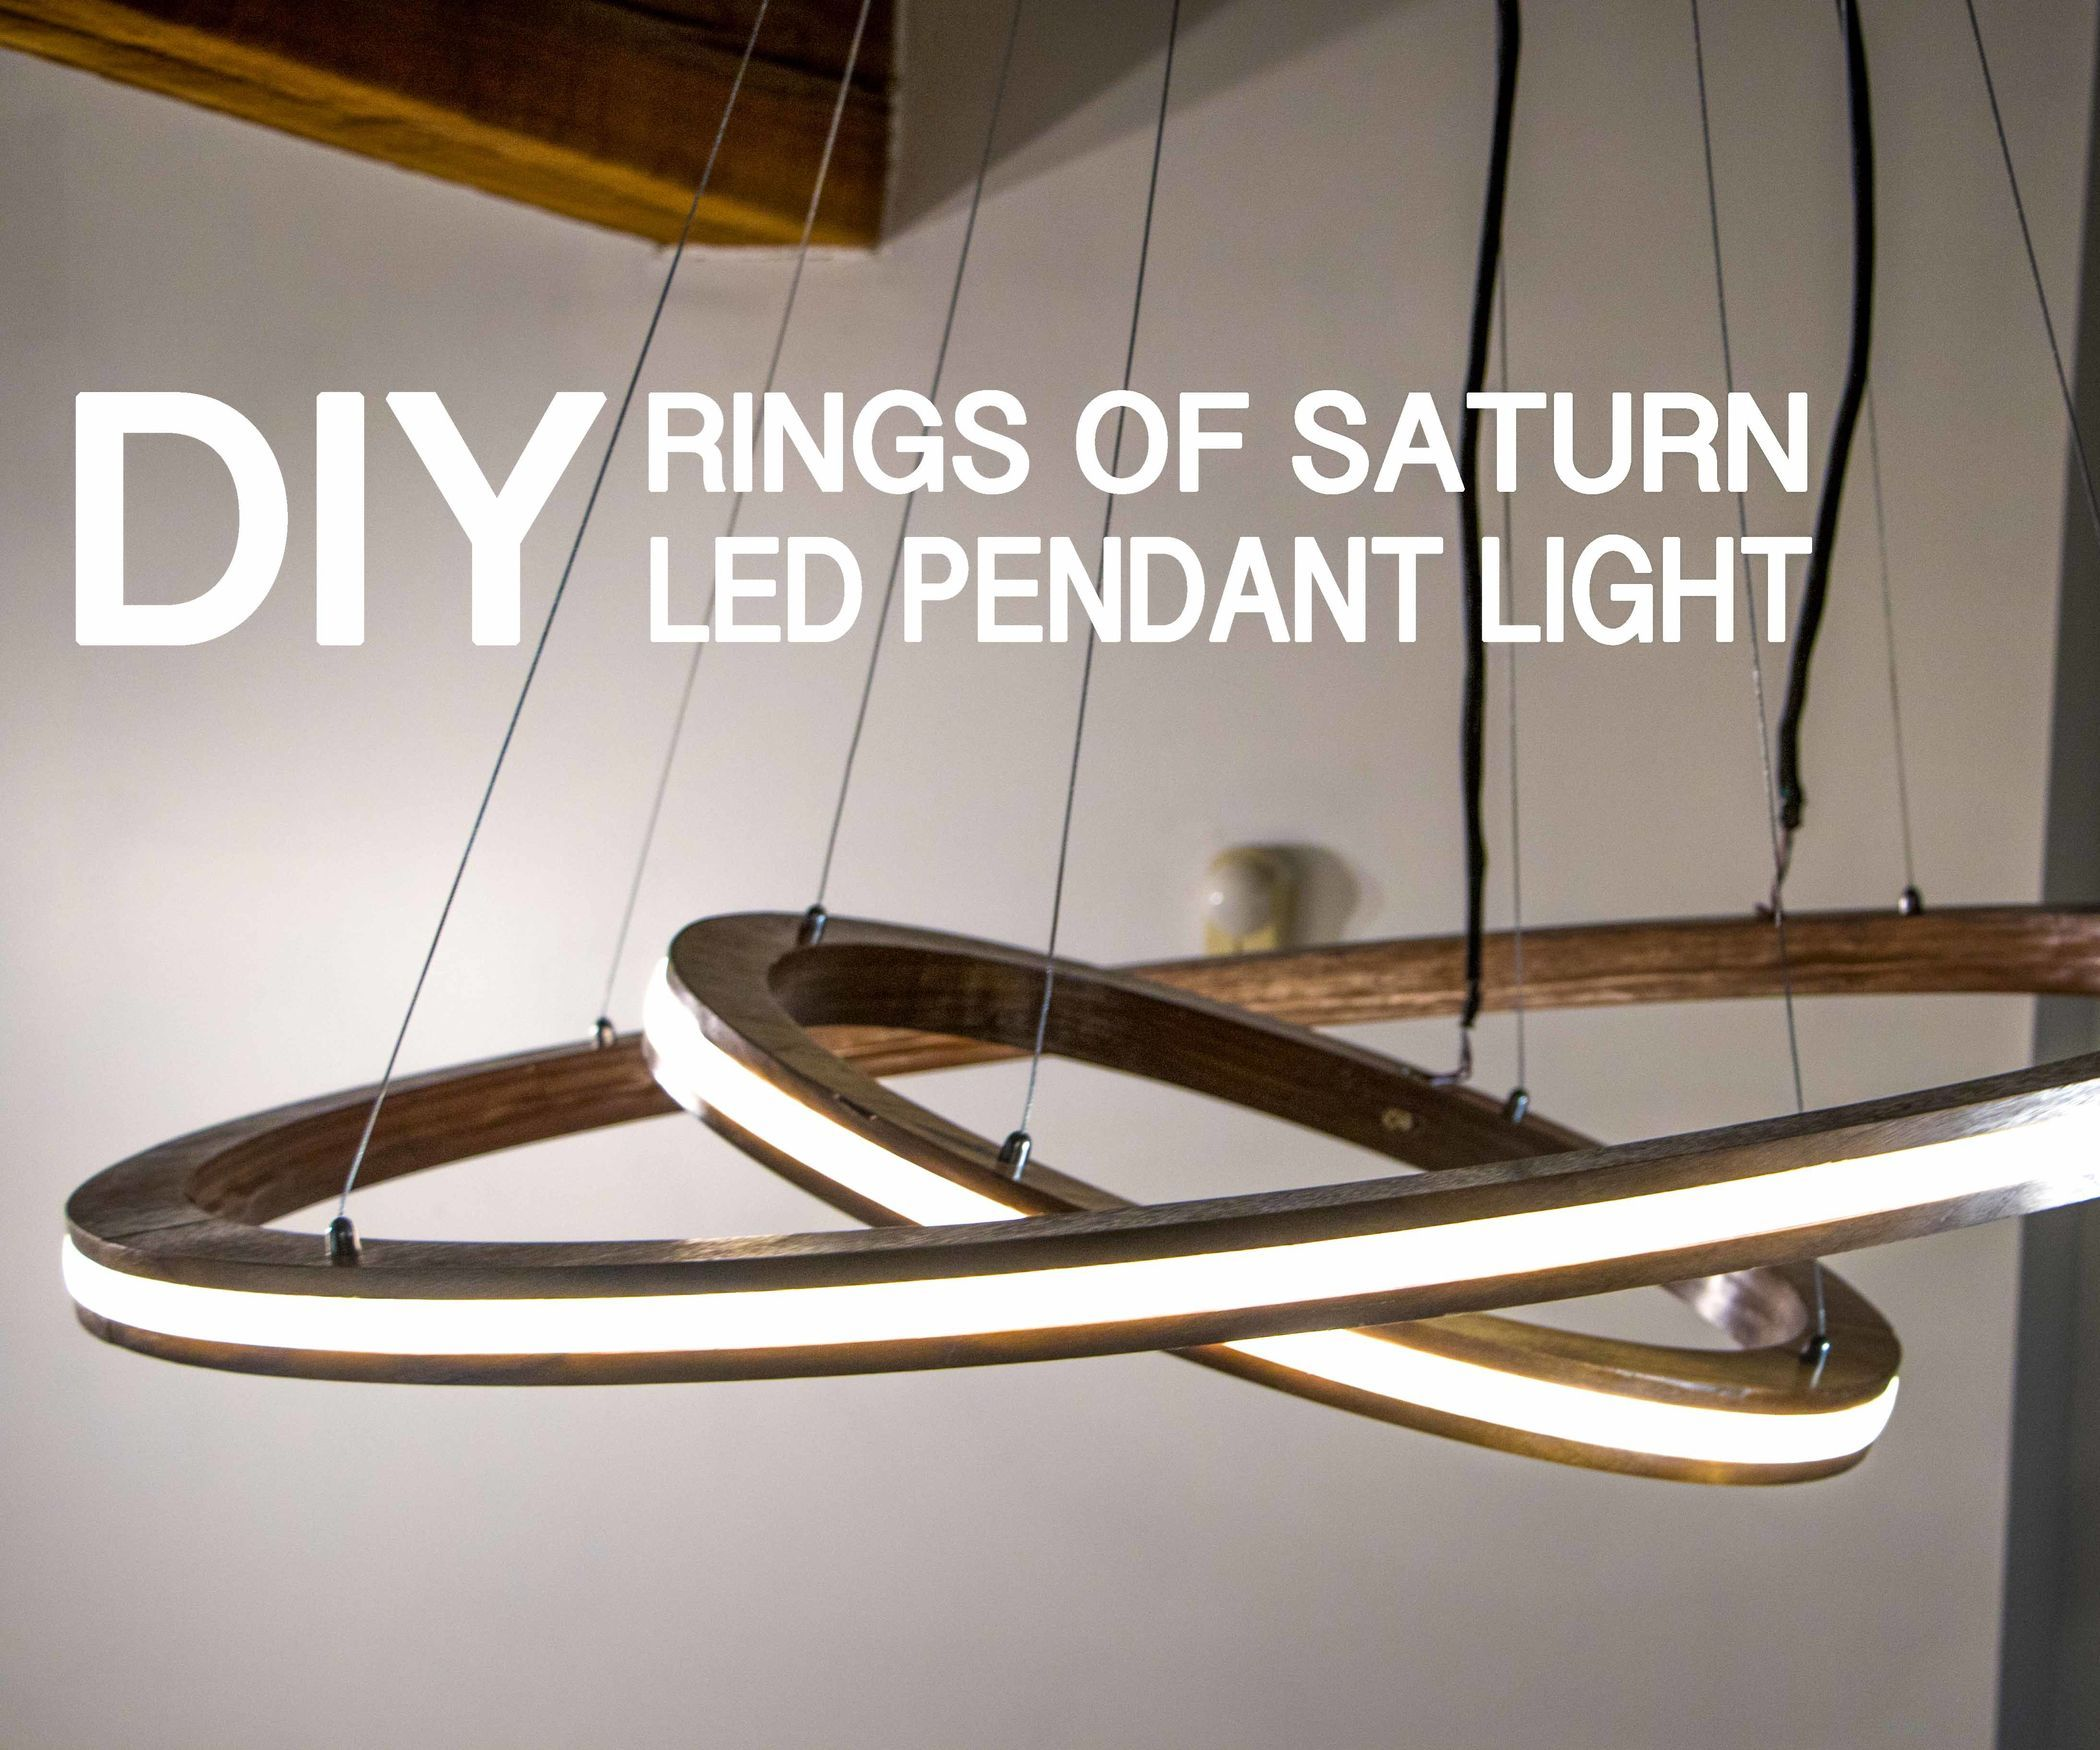 plywood lighting. I Made This LED Pendant Light From Plywood, Strips, And Flexible Channel Plywood Lighting N